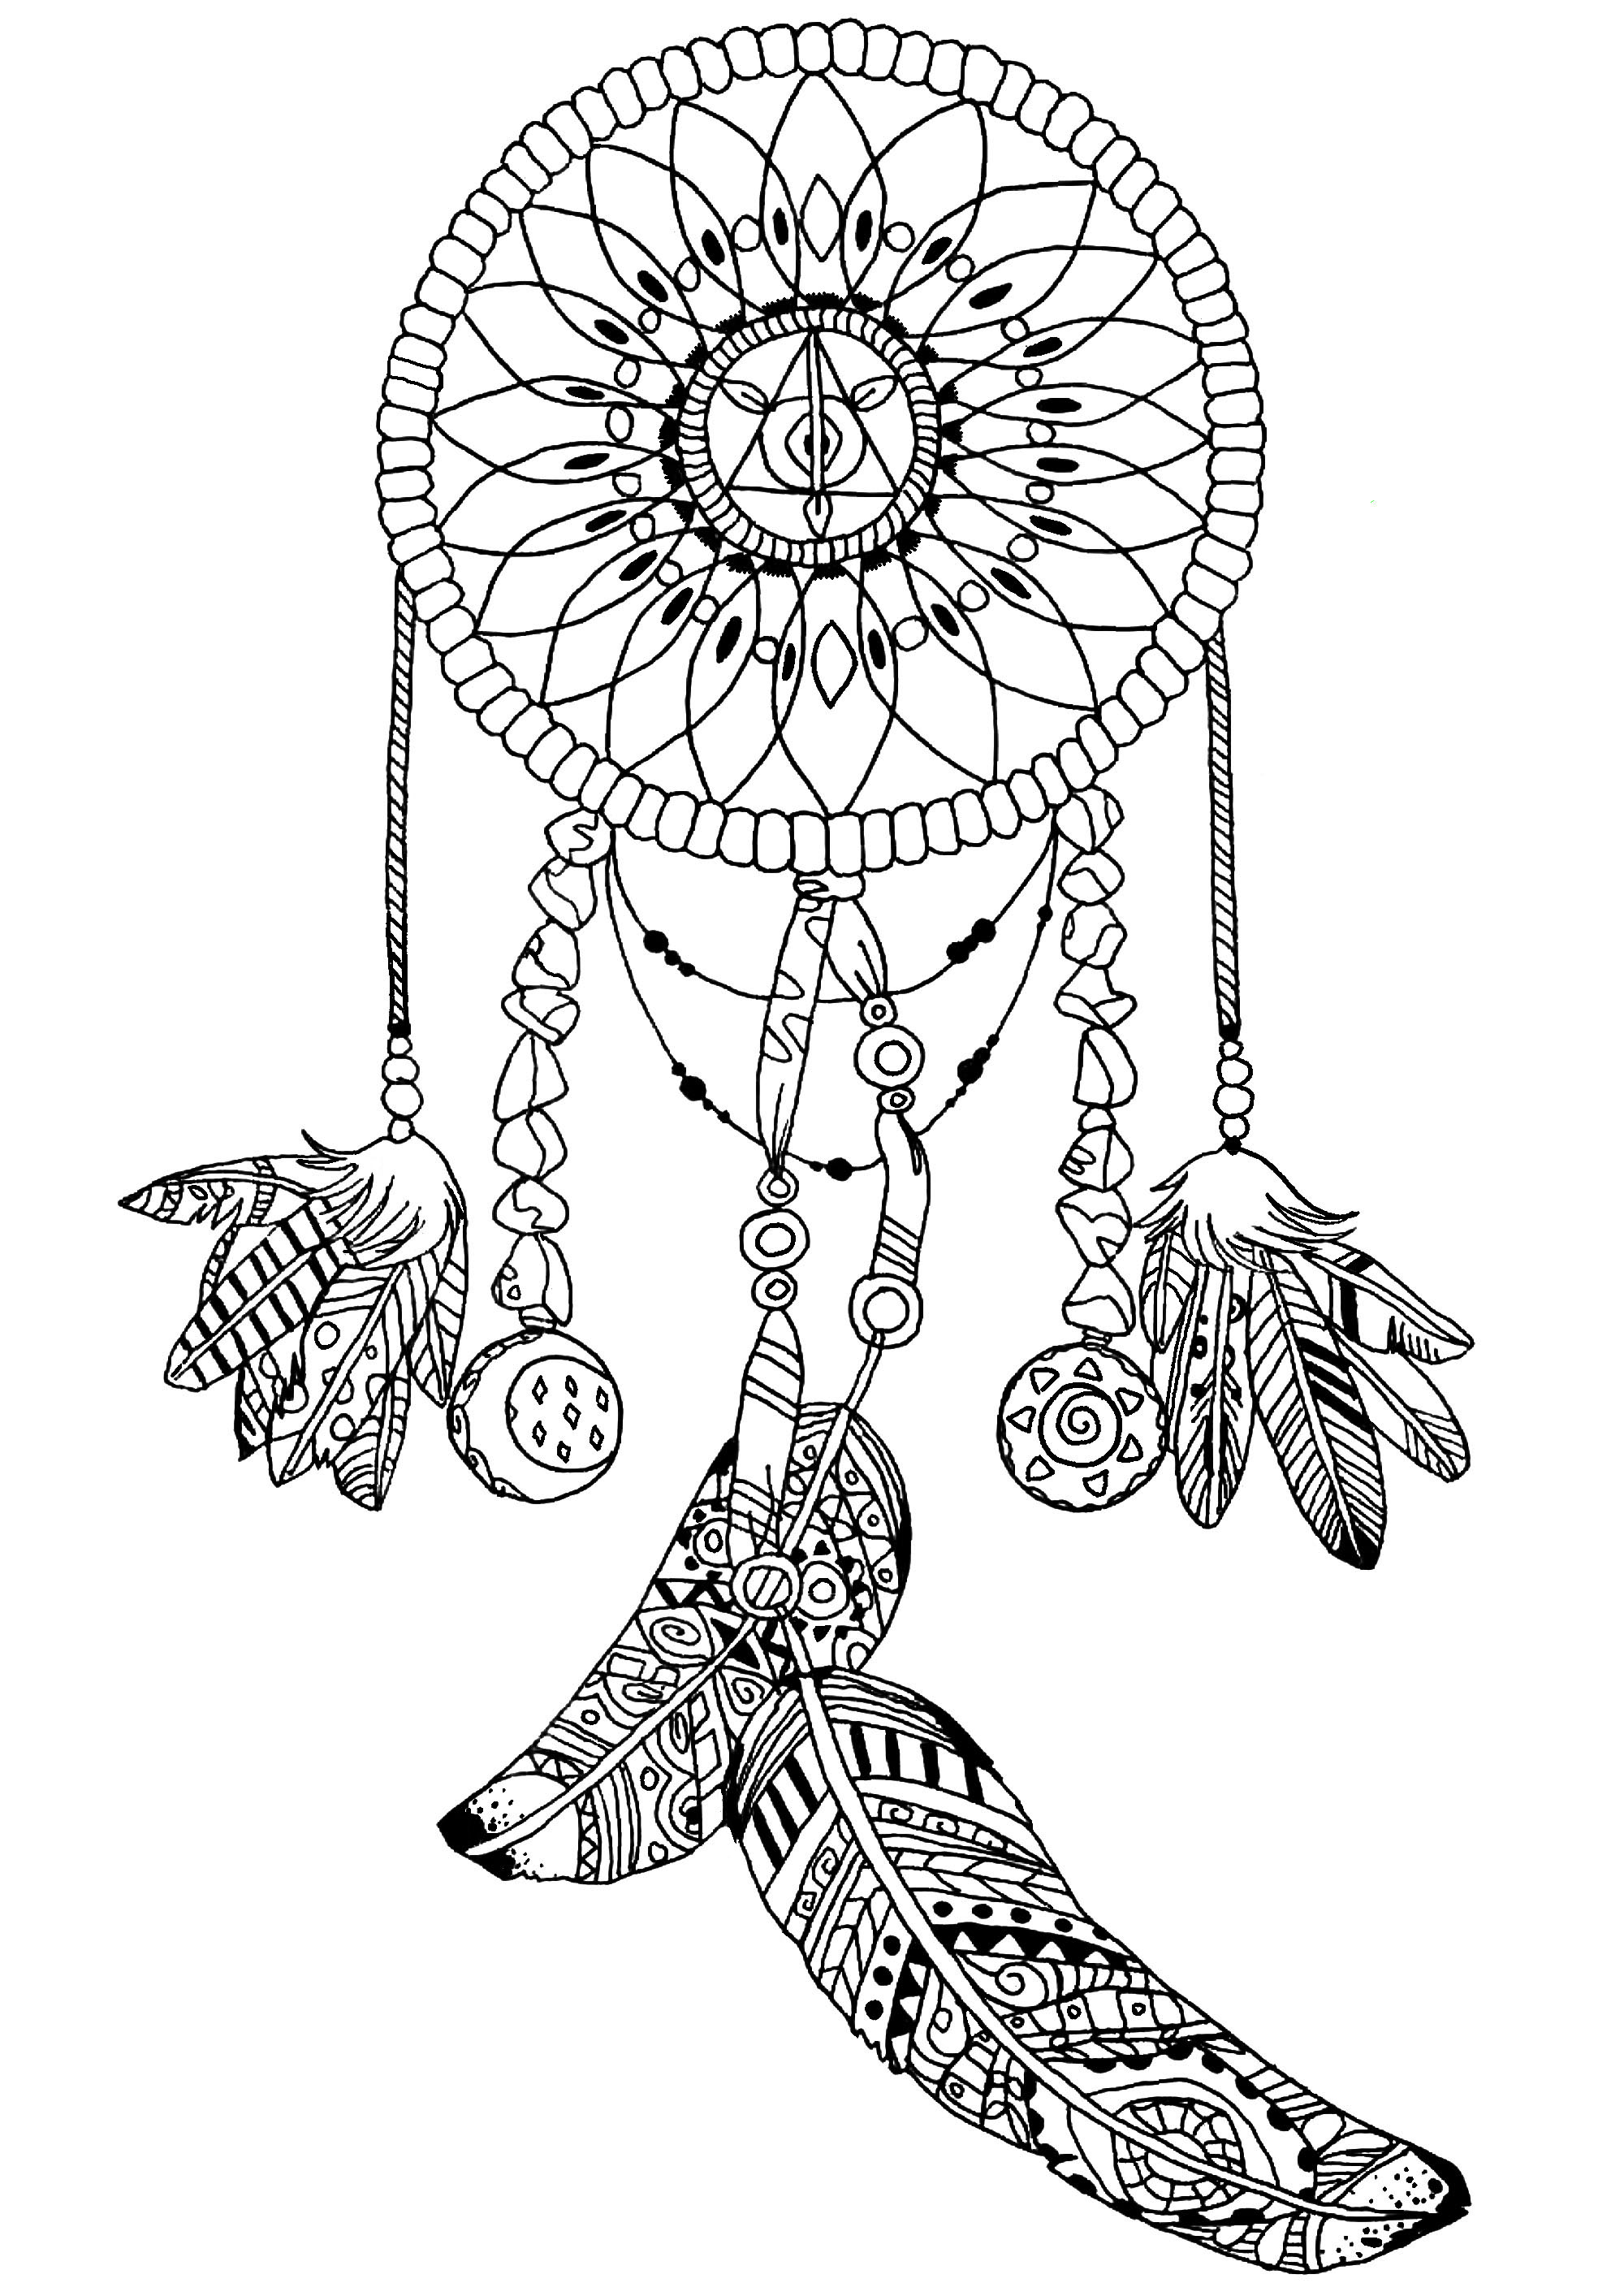 Attraoe Reve Attrape Rêves Dreamcatchers Coloriages Difficiles